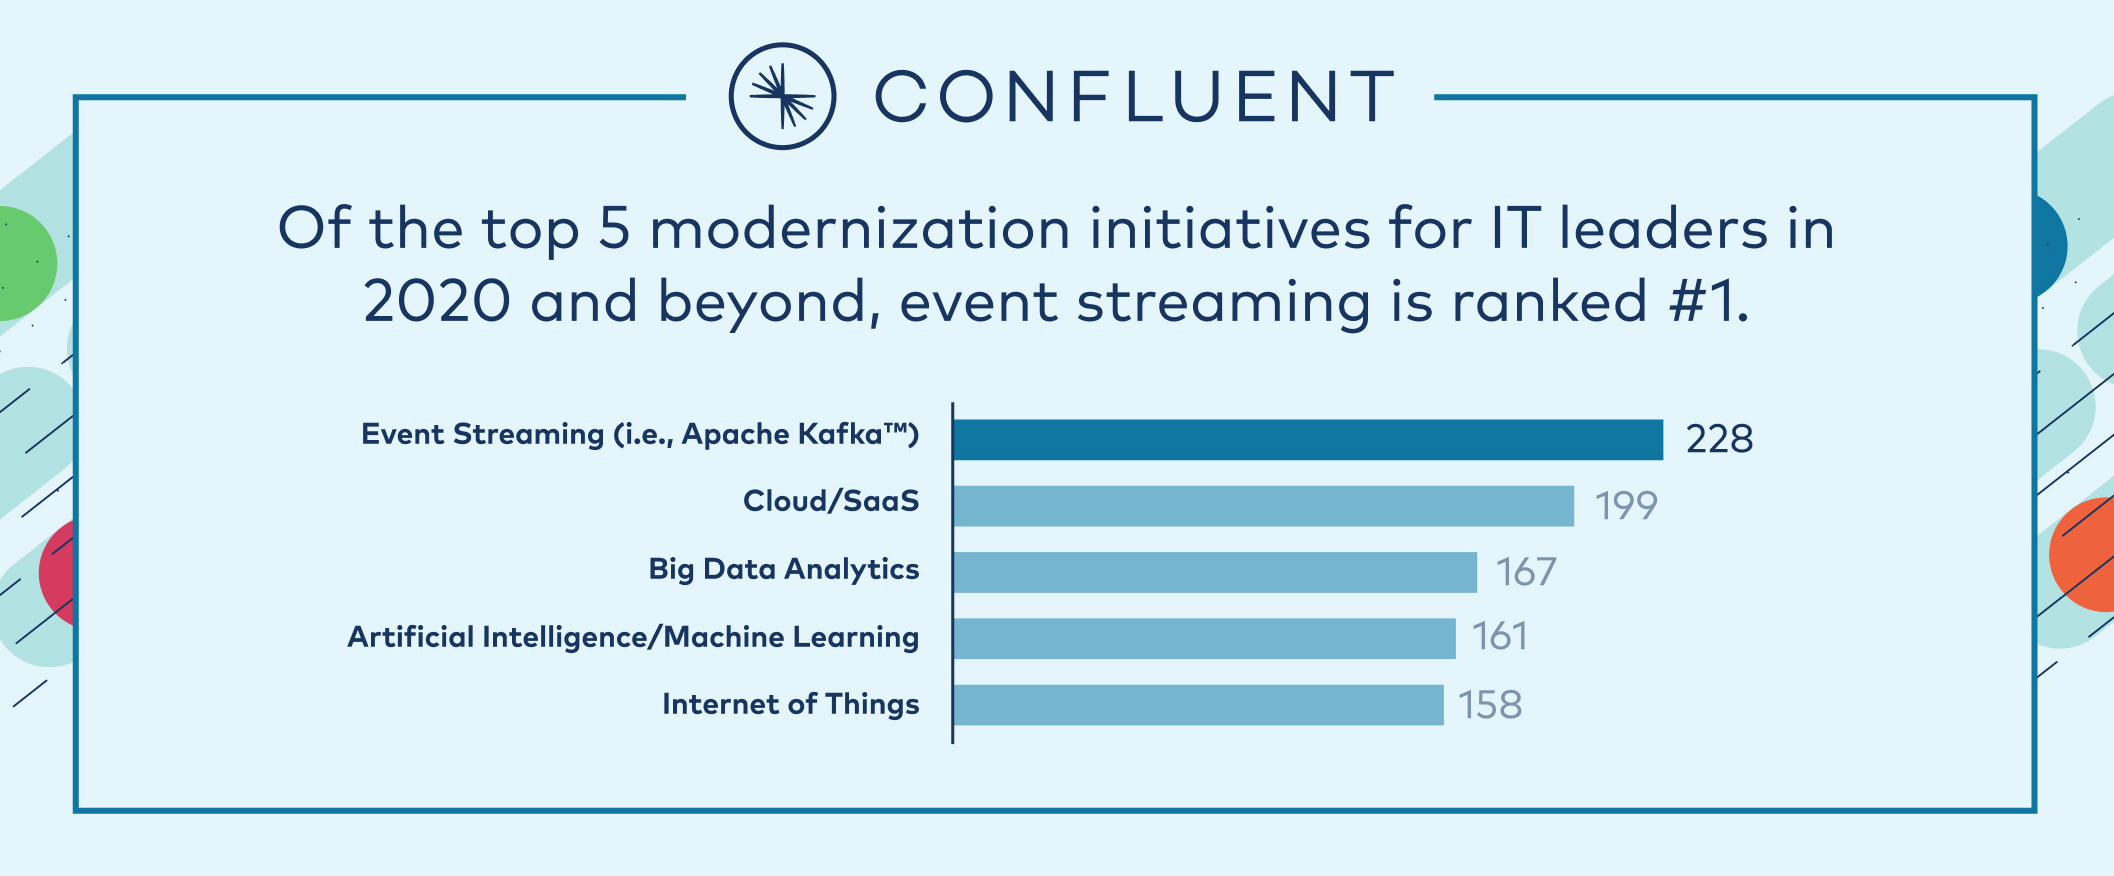 Of the top 5 modernization initiatives for IT leaders in 2020 and beyond, event streaming is ranked #1.